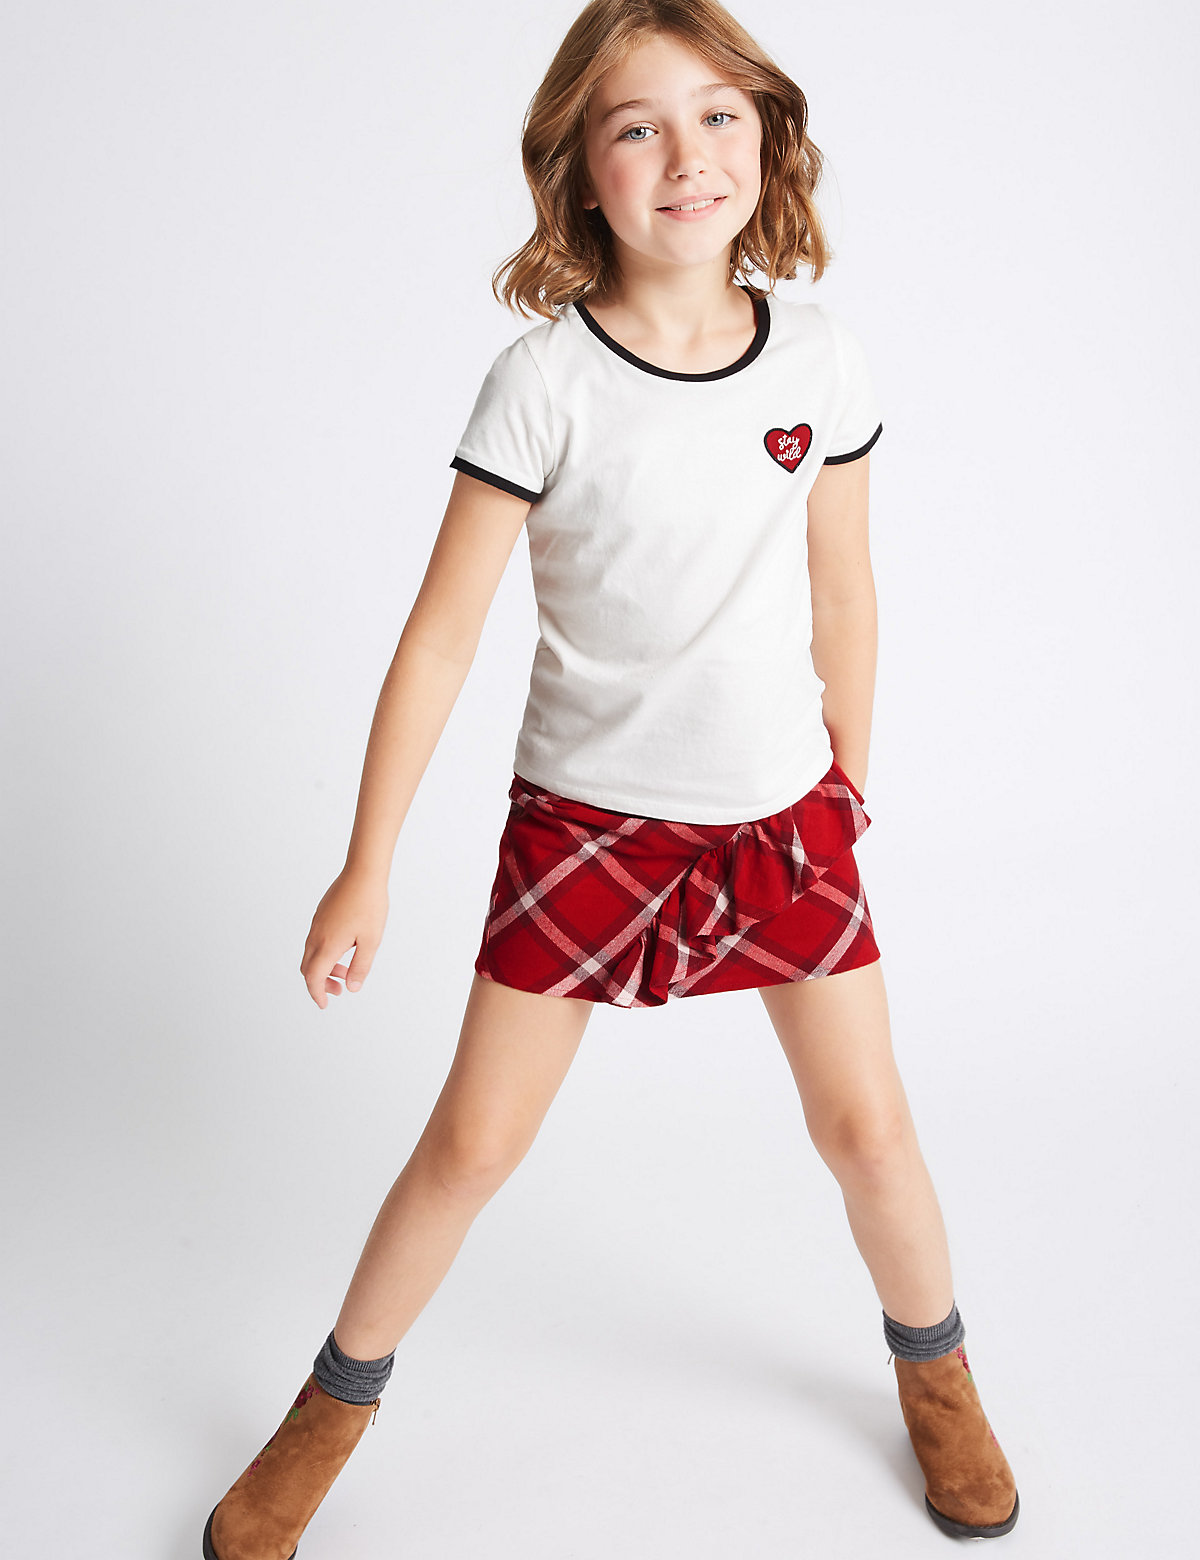 2 Piece Pure Cotton T-Shirt with Skirt Outfit (3-14 Years)